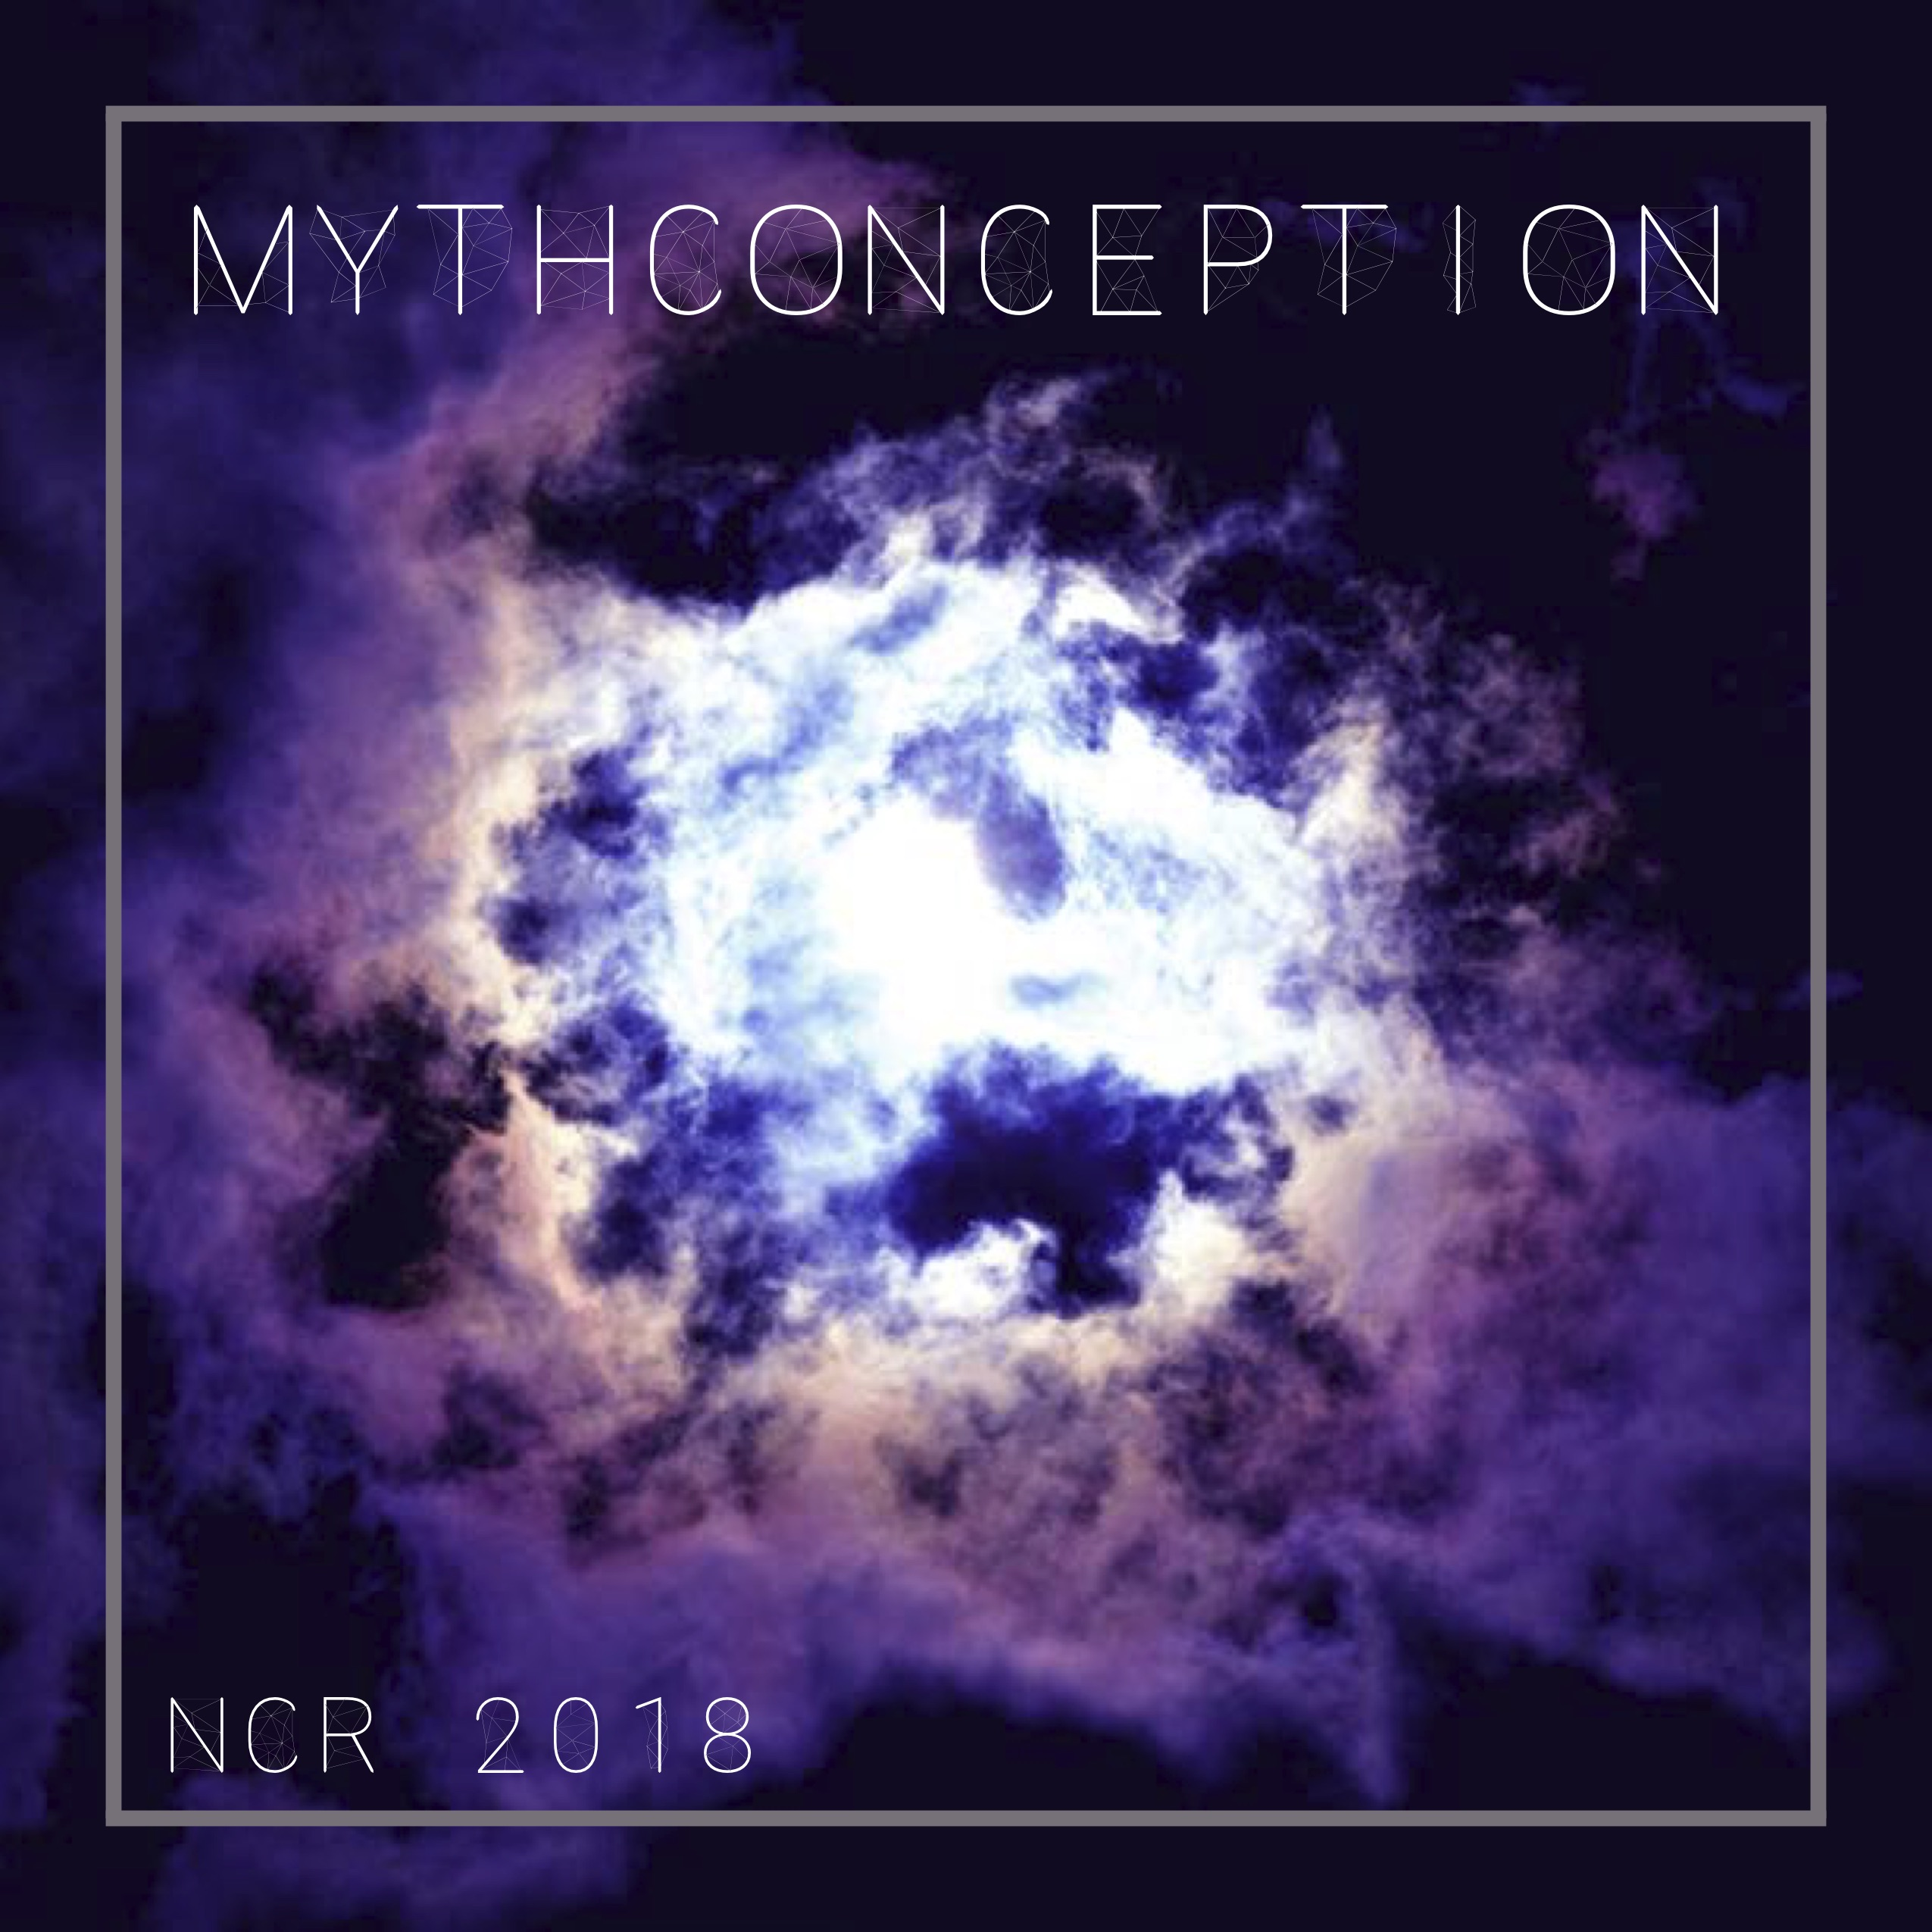 2018 issue cover of The New College Review, featuring a cloudy sky tinted in purple with the title Mythconception